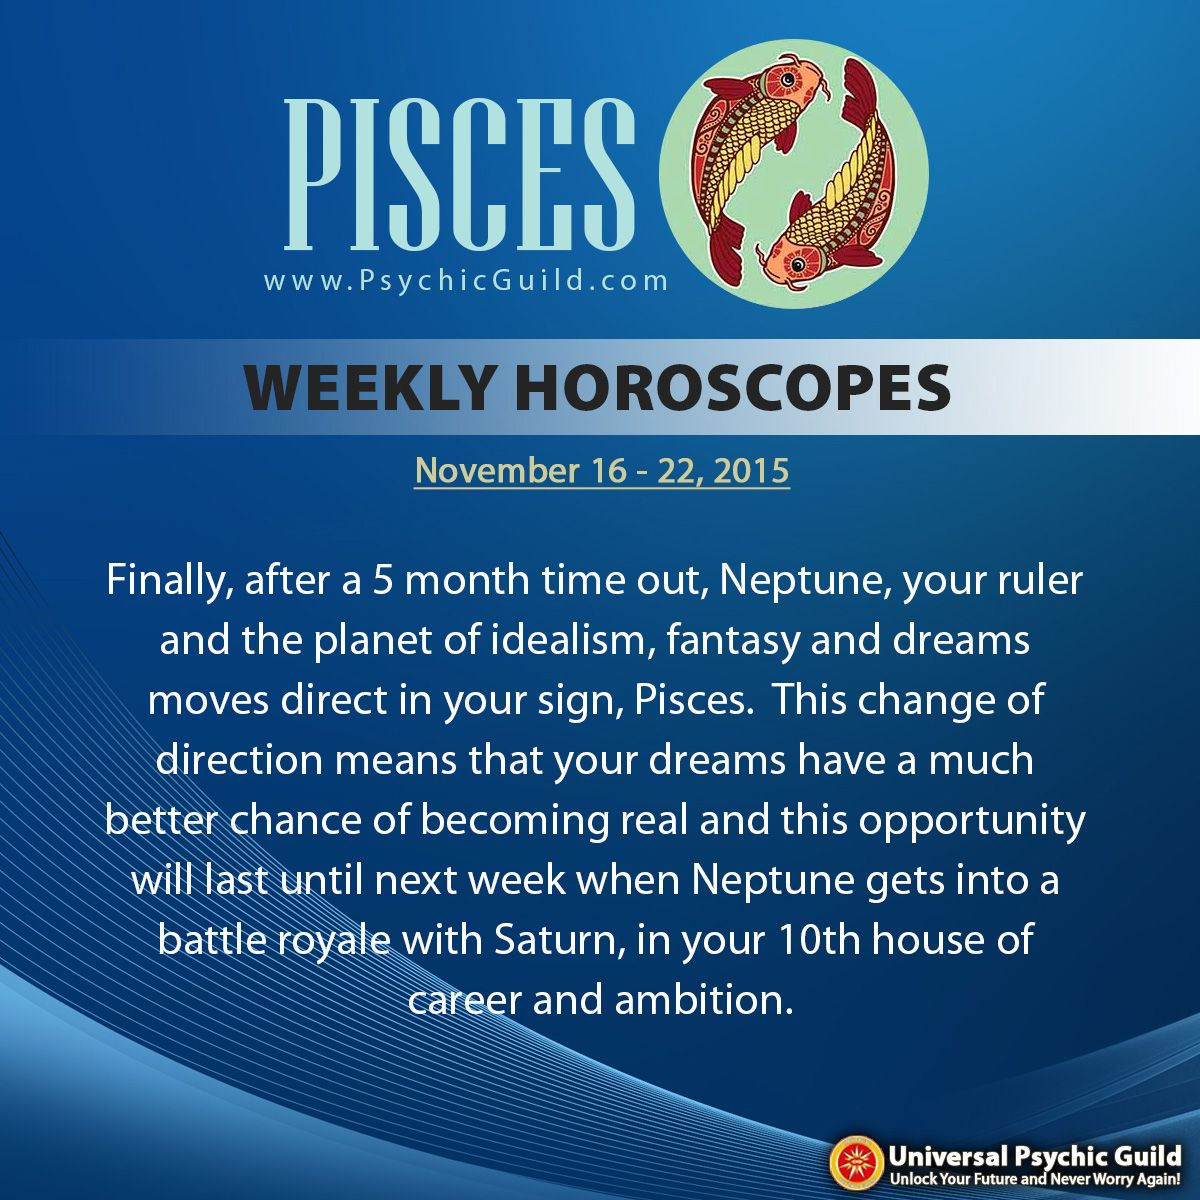 PISCES - Focus on what you want out of your career and where you see